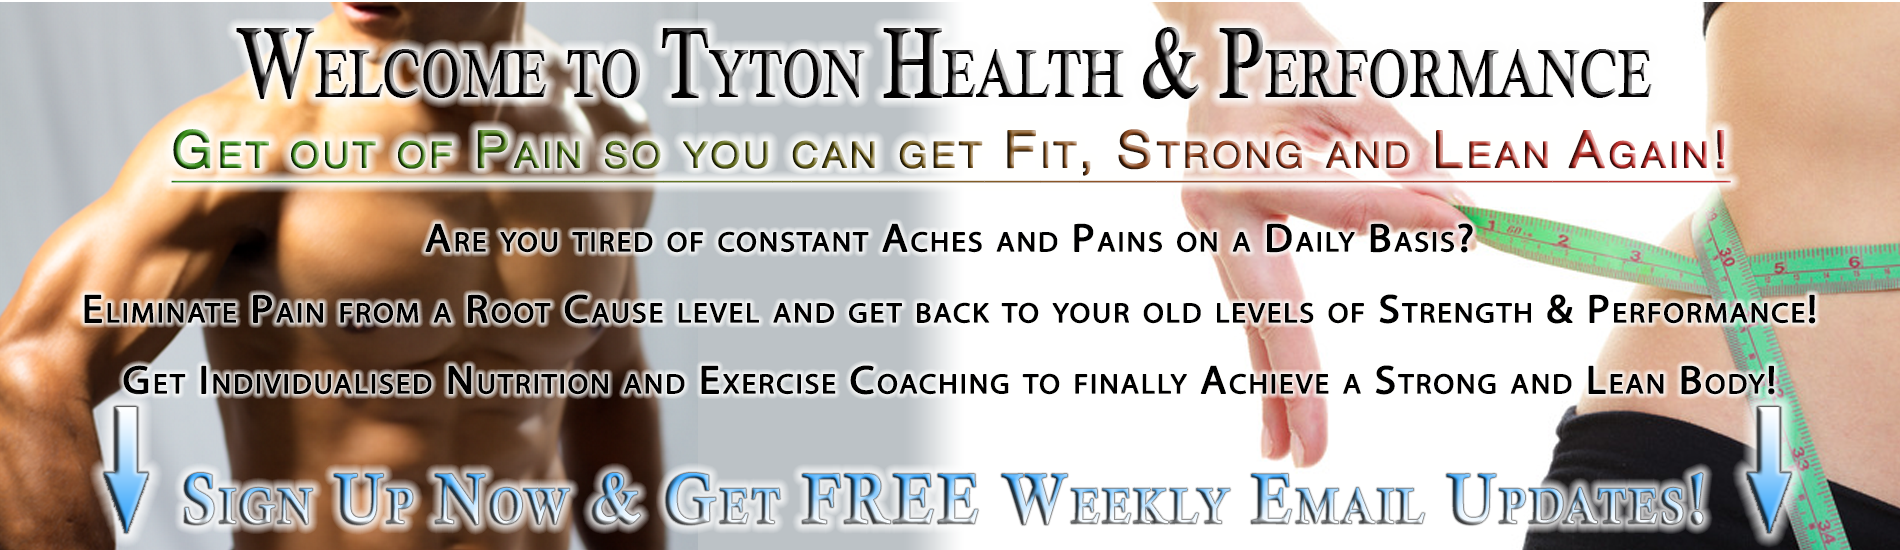 Welcome to Tyton Health & Performance